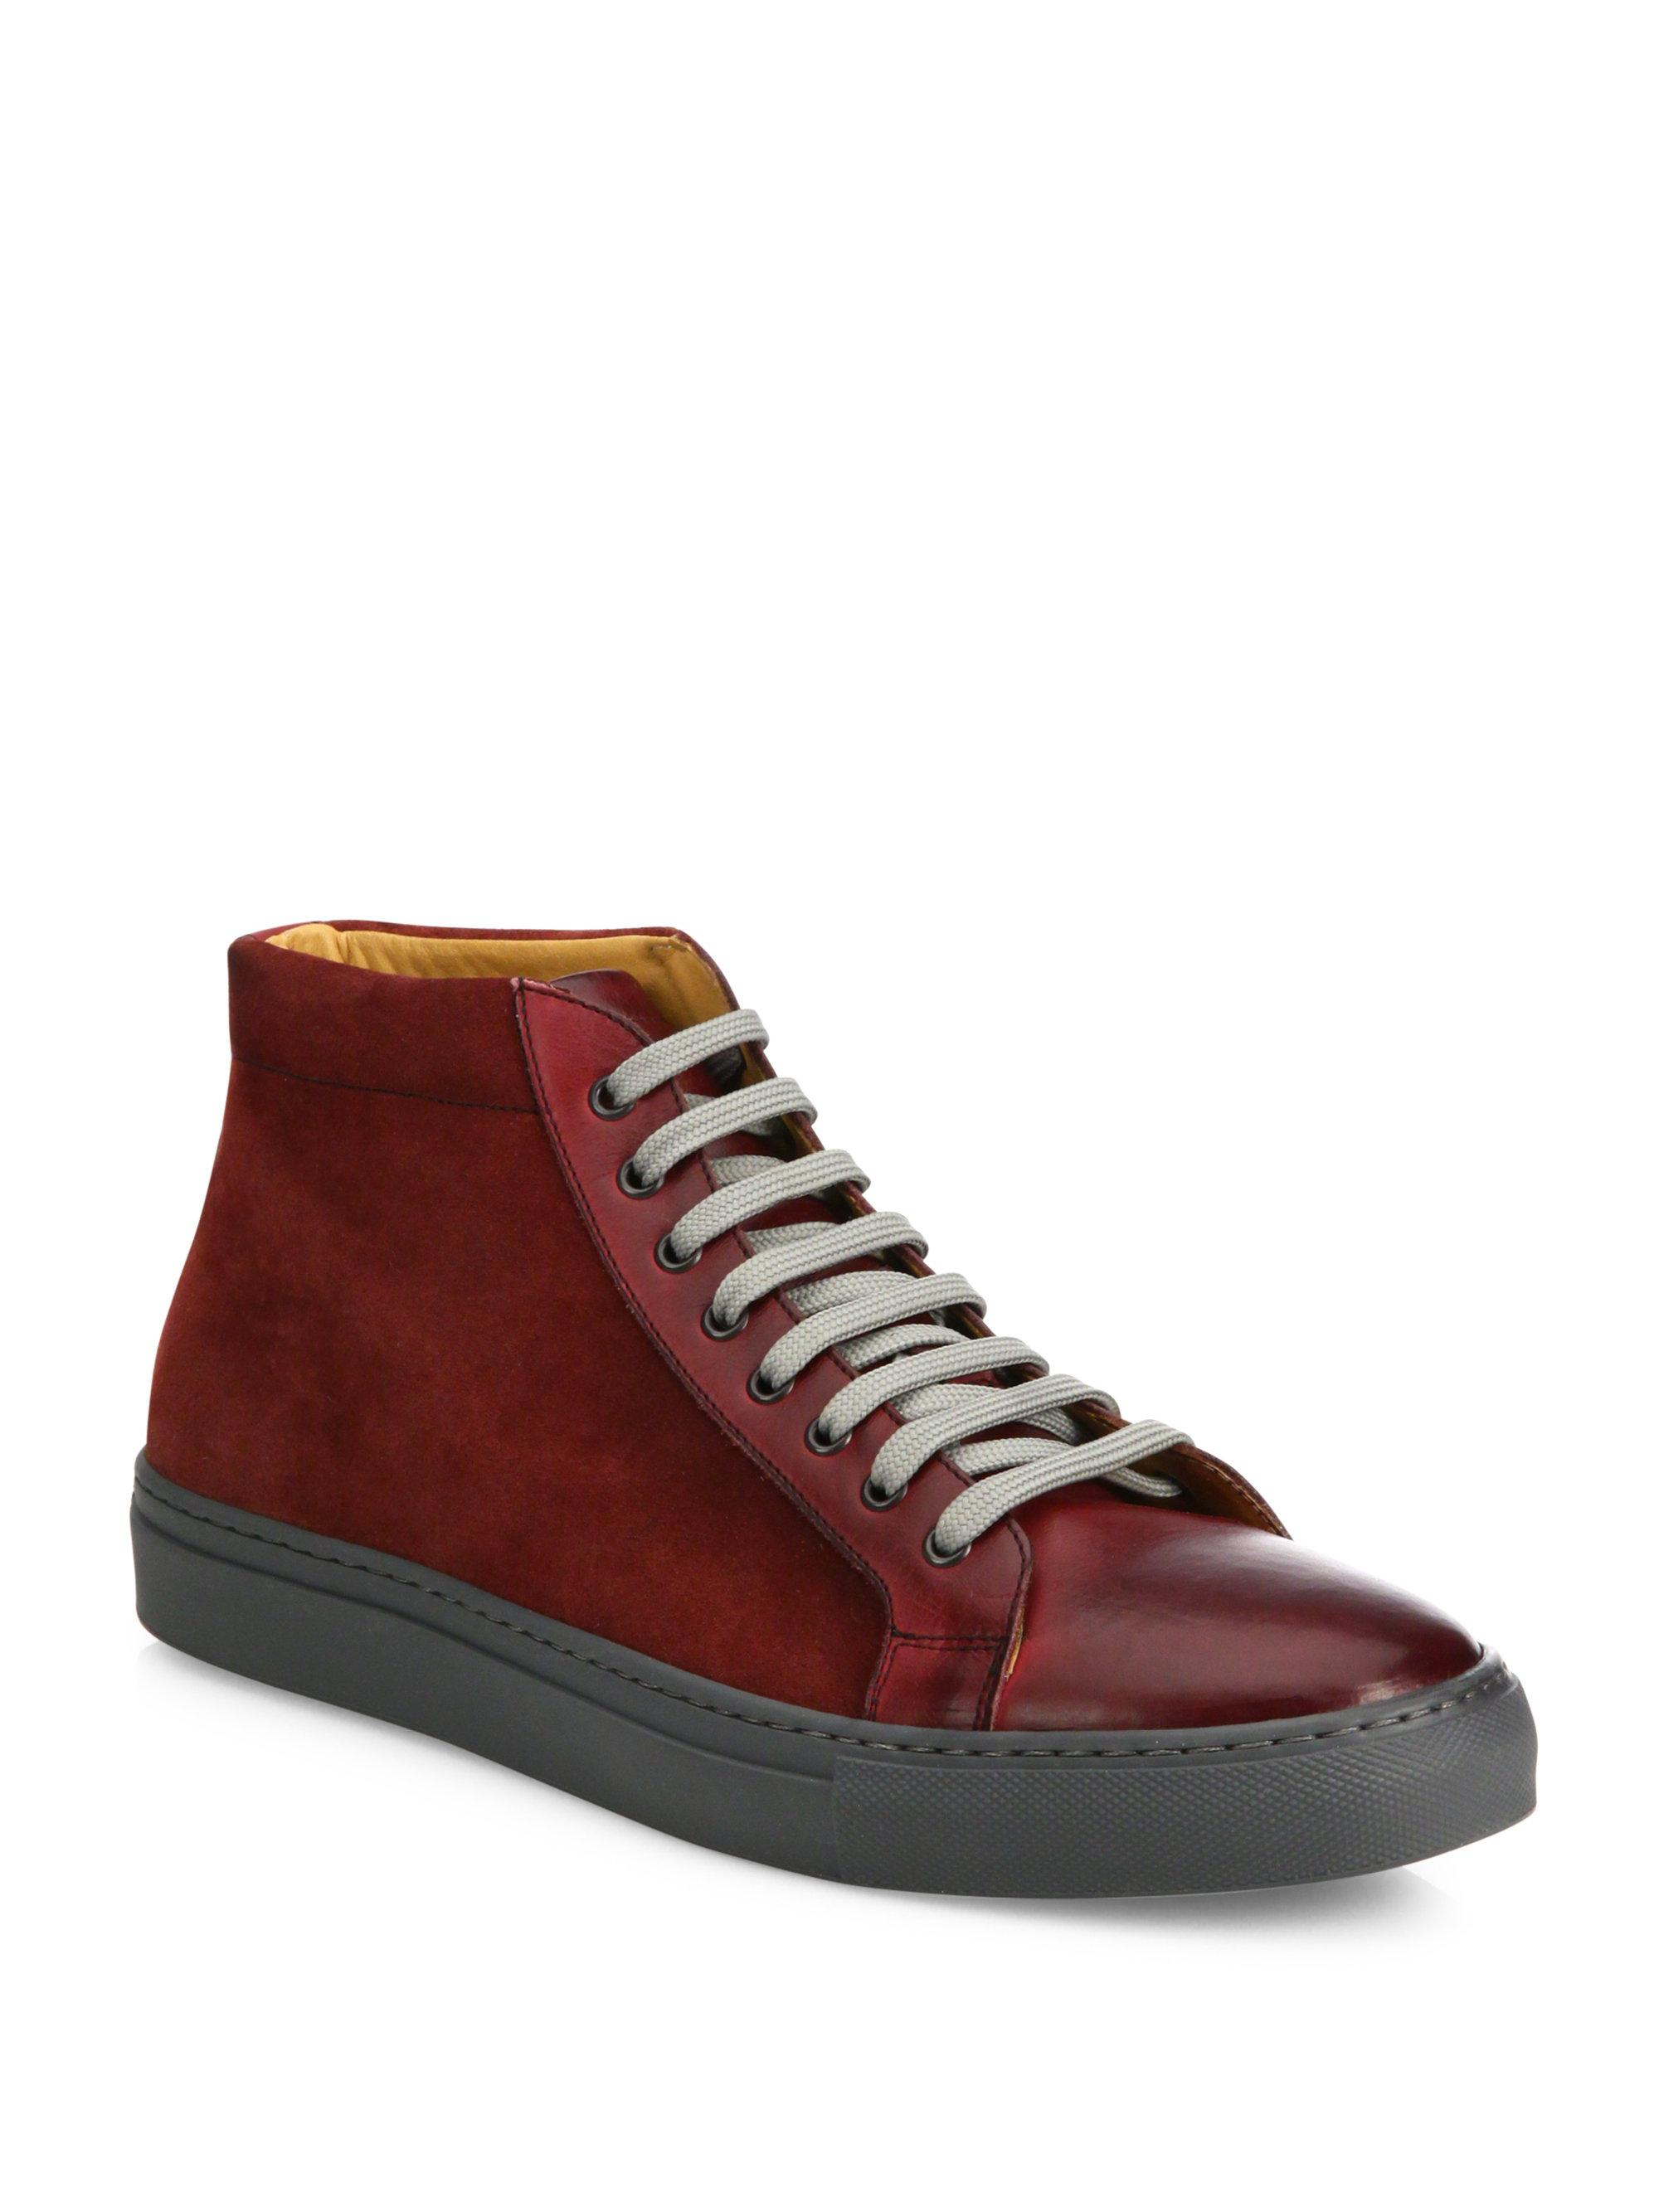 Saks Fifth Avenue COLLECTION Mix Media Leather High-Top Sneakers dI8h1BkKNK